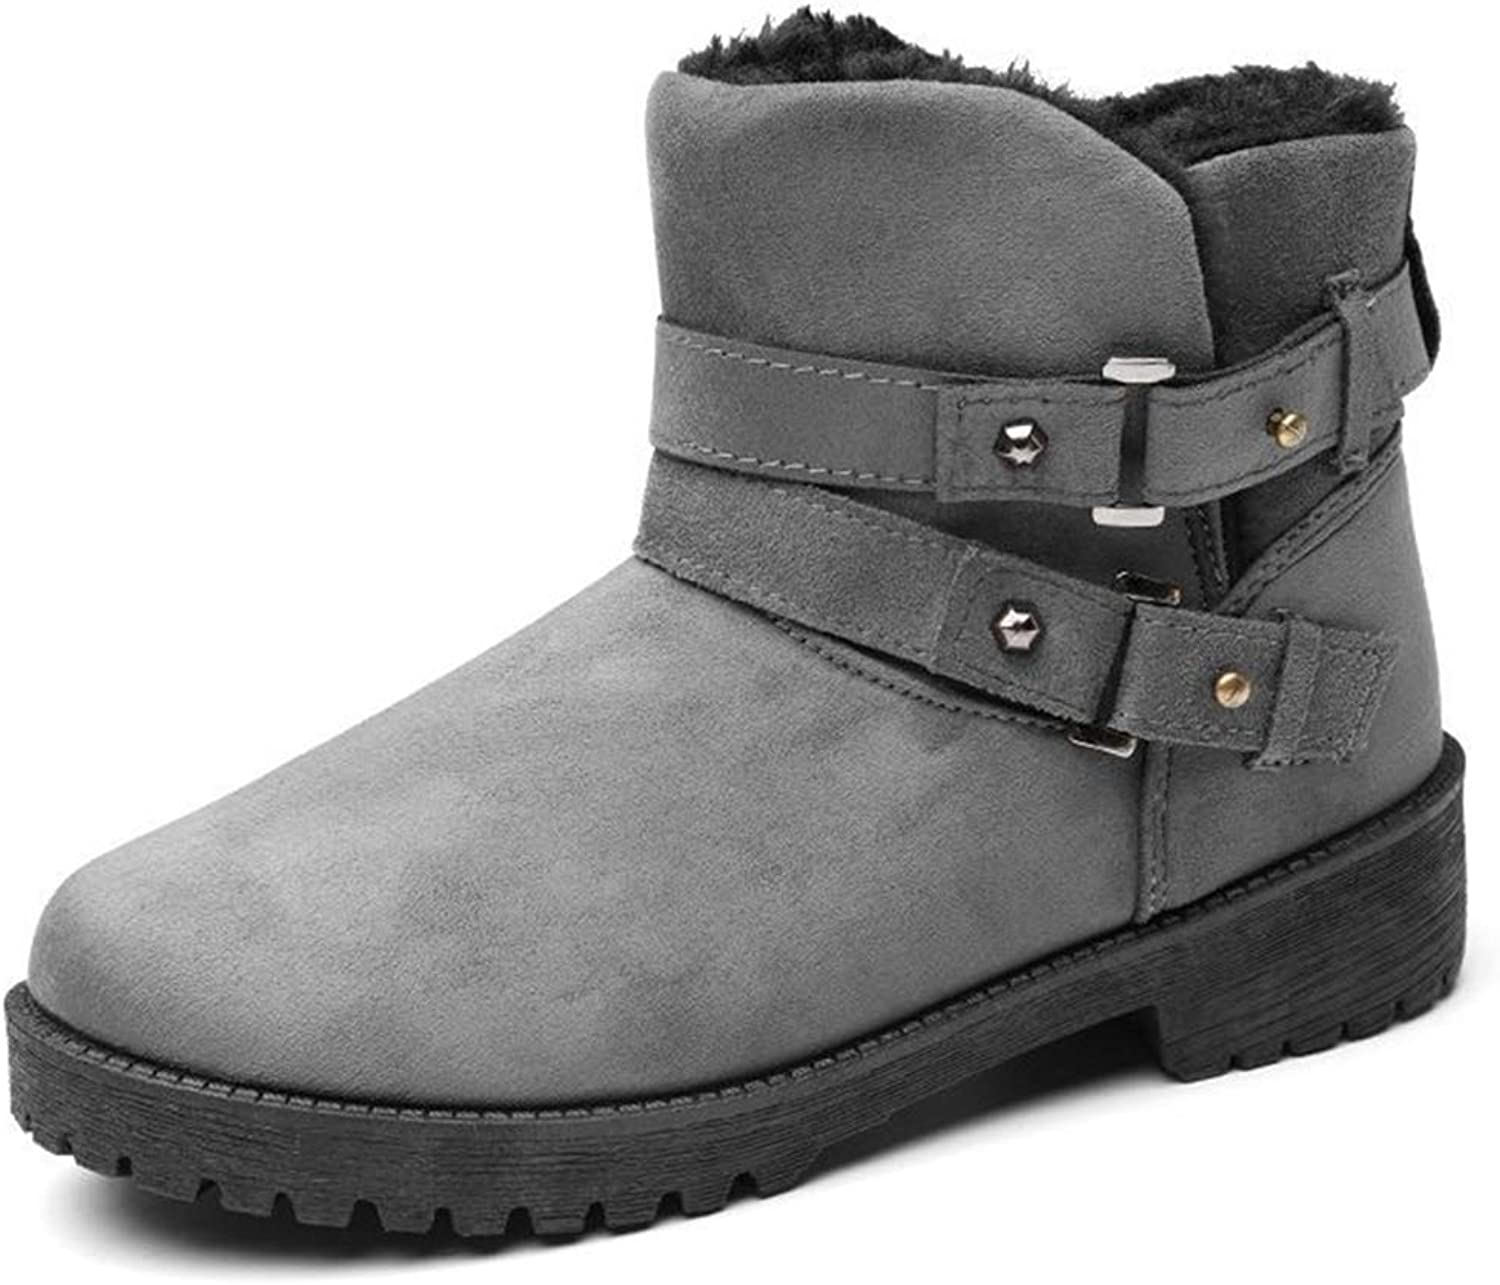 GIY Women's Winter Warm Snow Boots Comfortable Suede Slip On Square Heel Outdoor Snow Ankle Booties